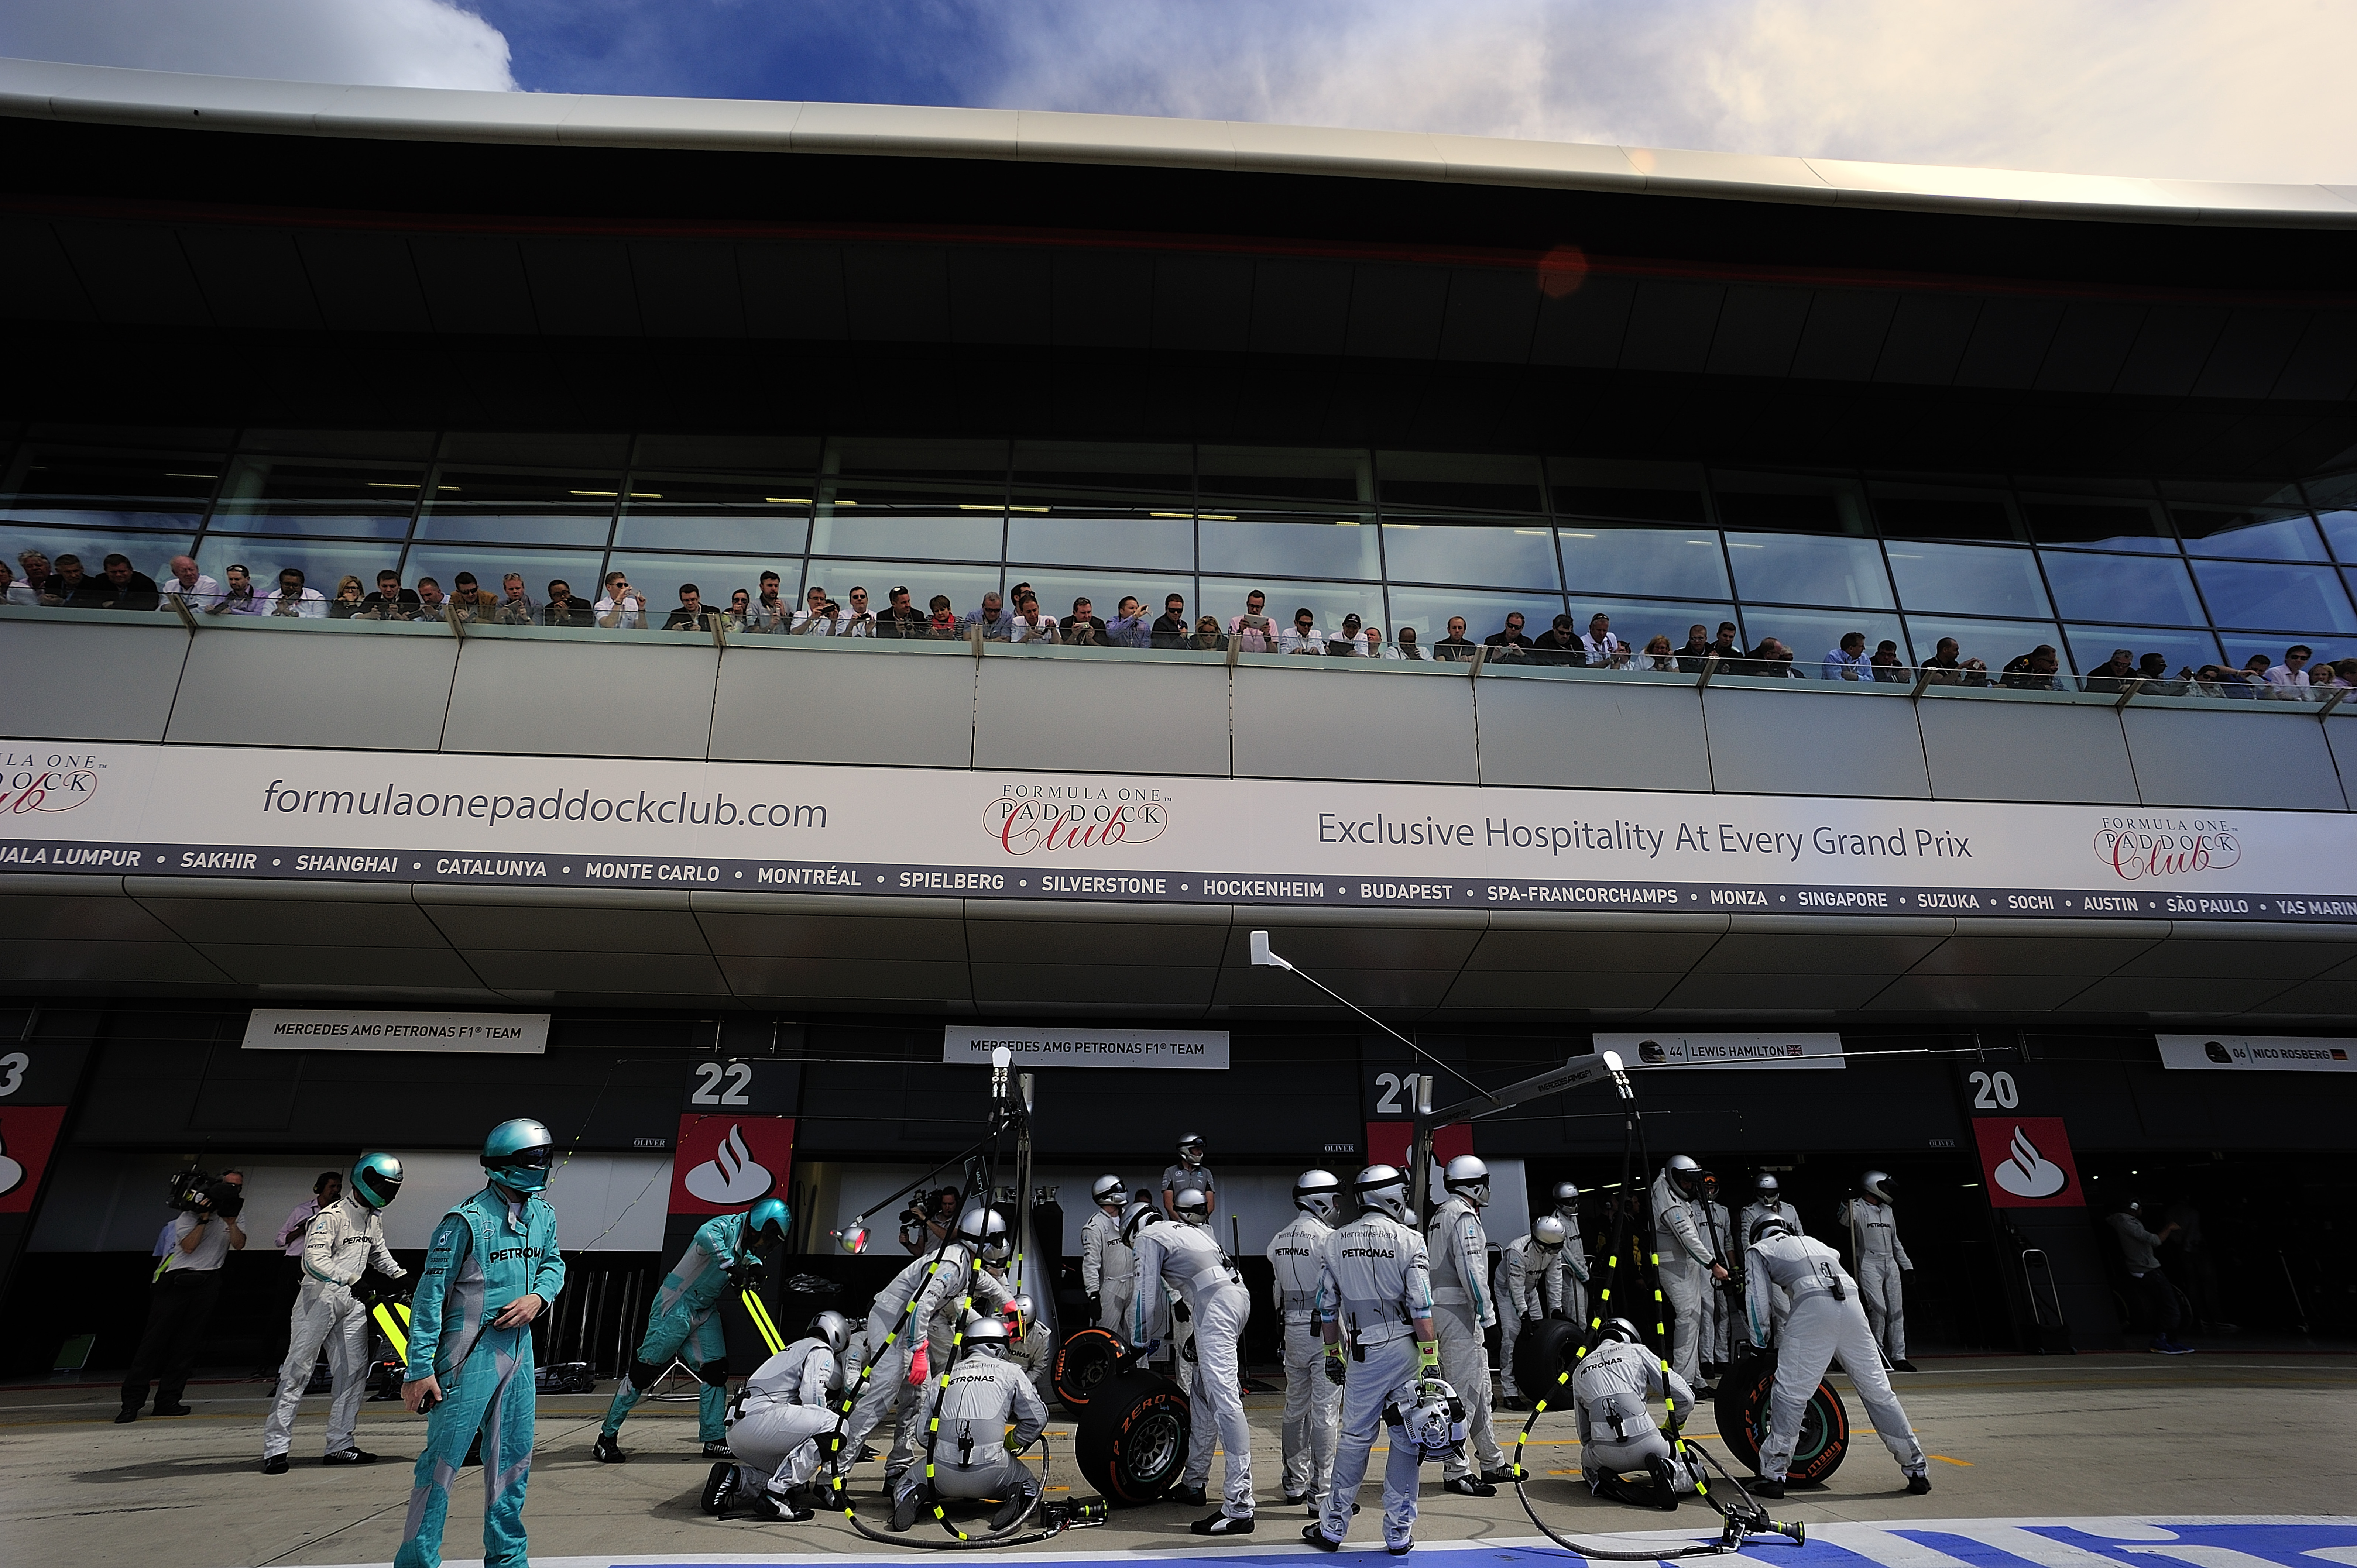 Formula-One-Paddock-Club-Seating-04.jpg